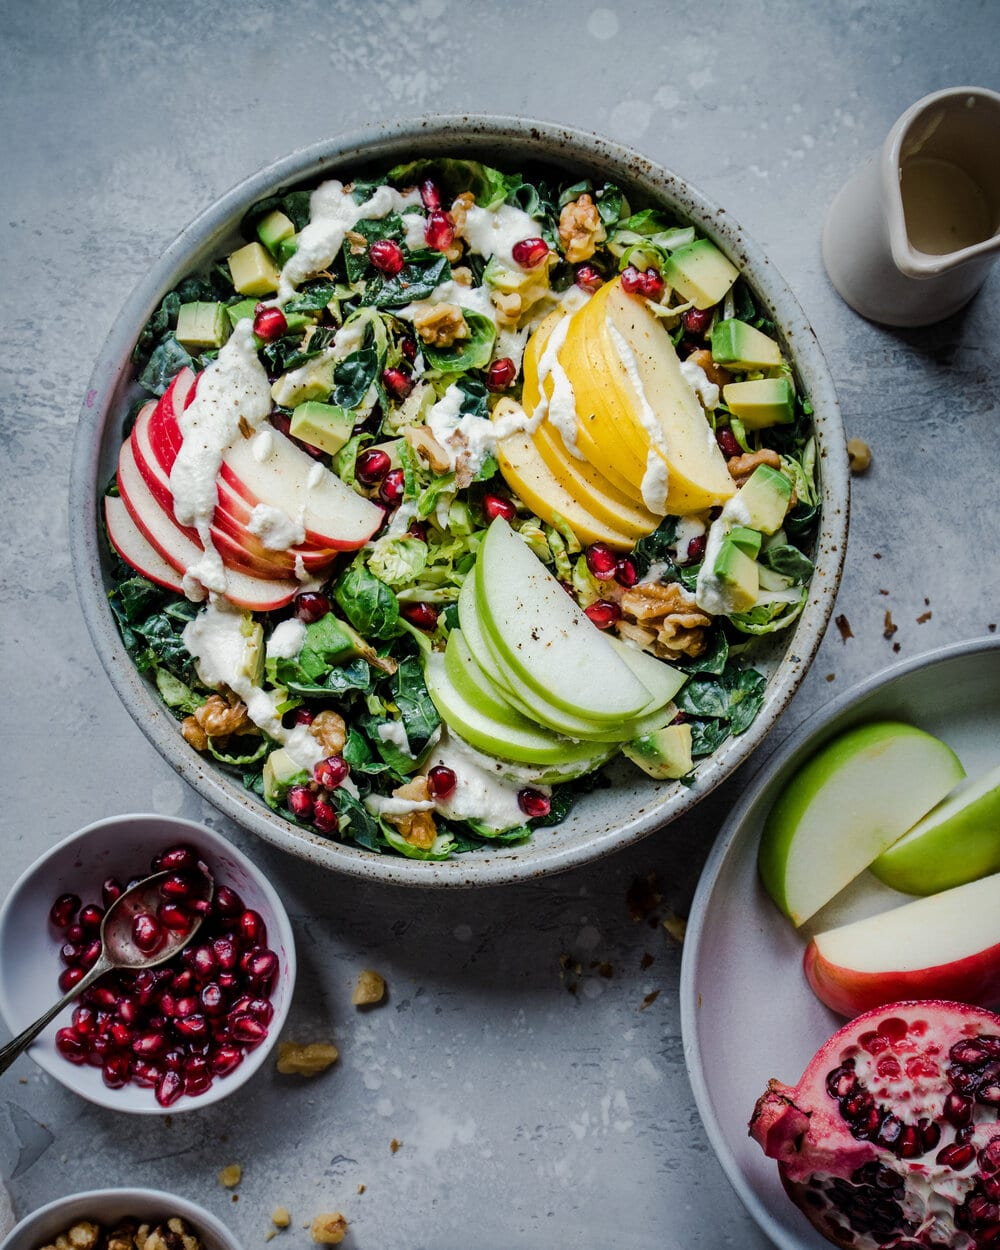 Kale and Brussels Sprouts Winter Salad